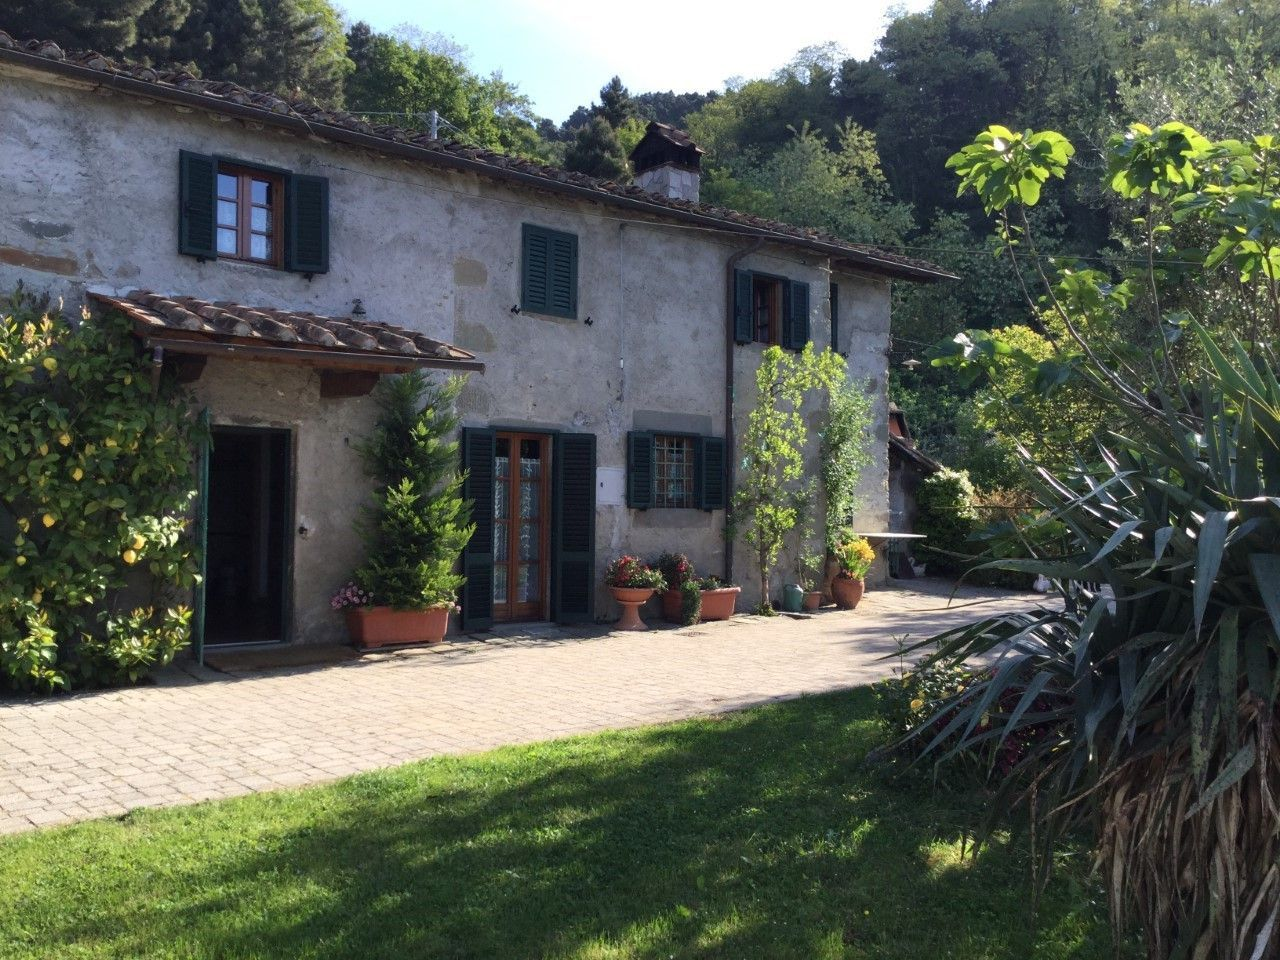 The value of property in Montecatini Terme for emigration